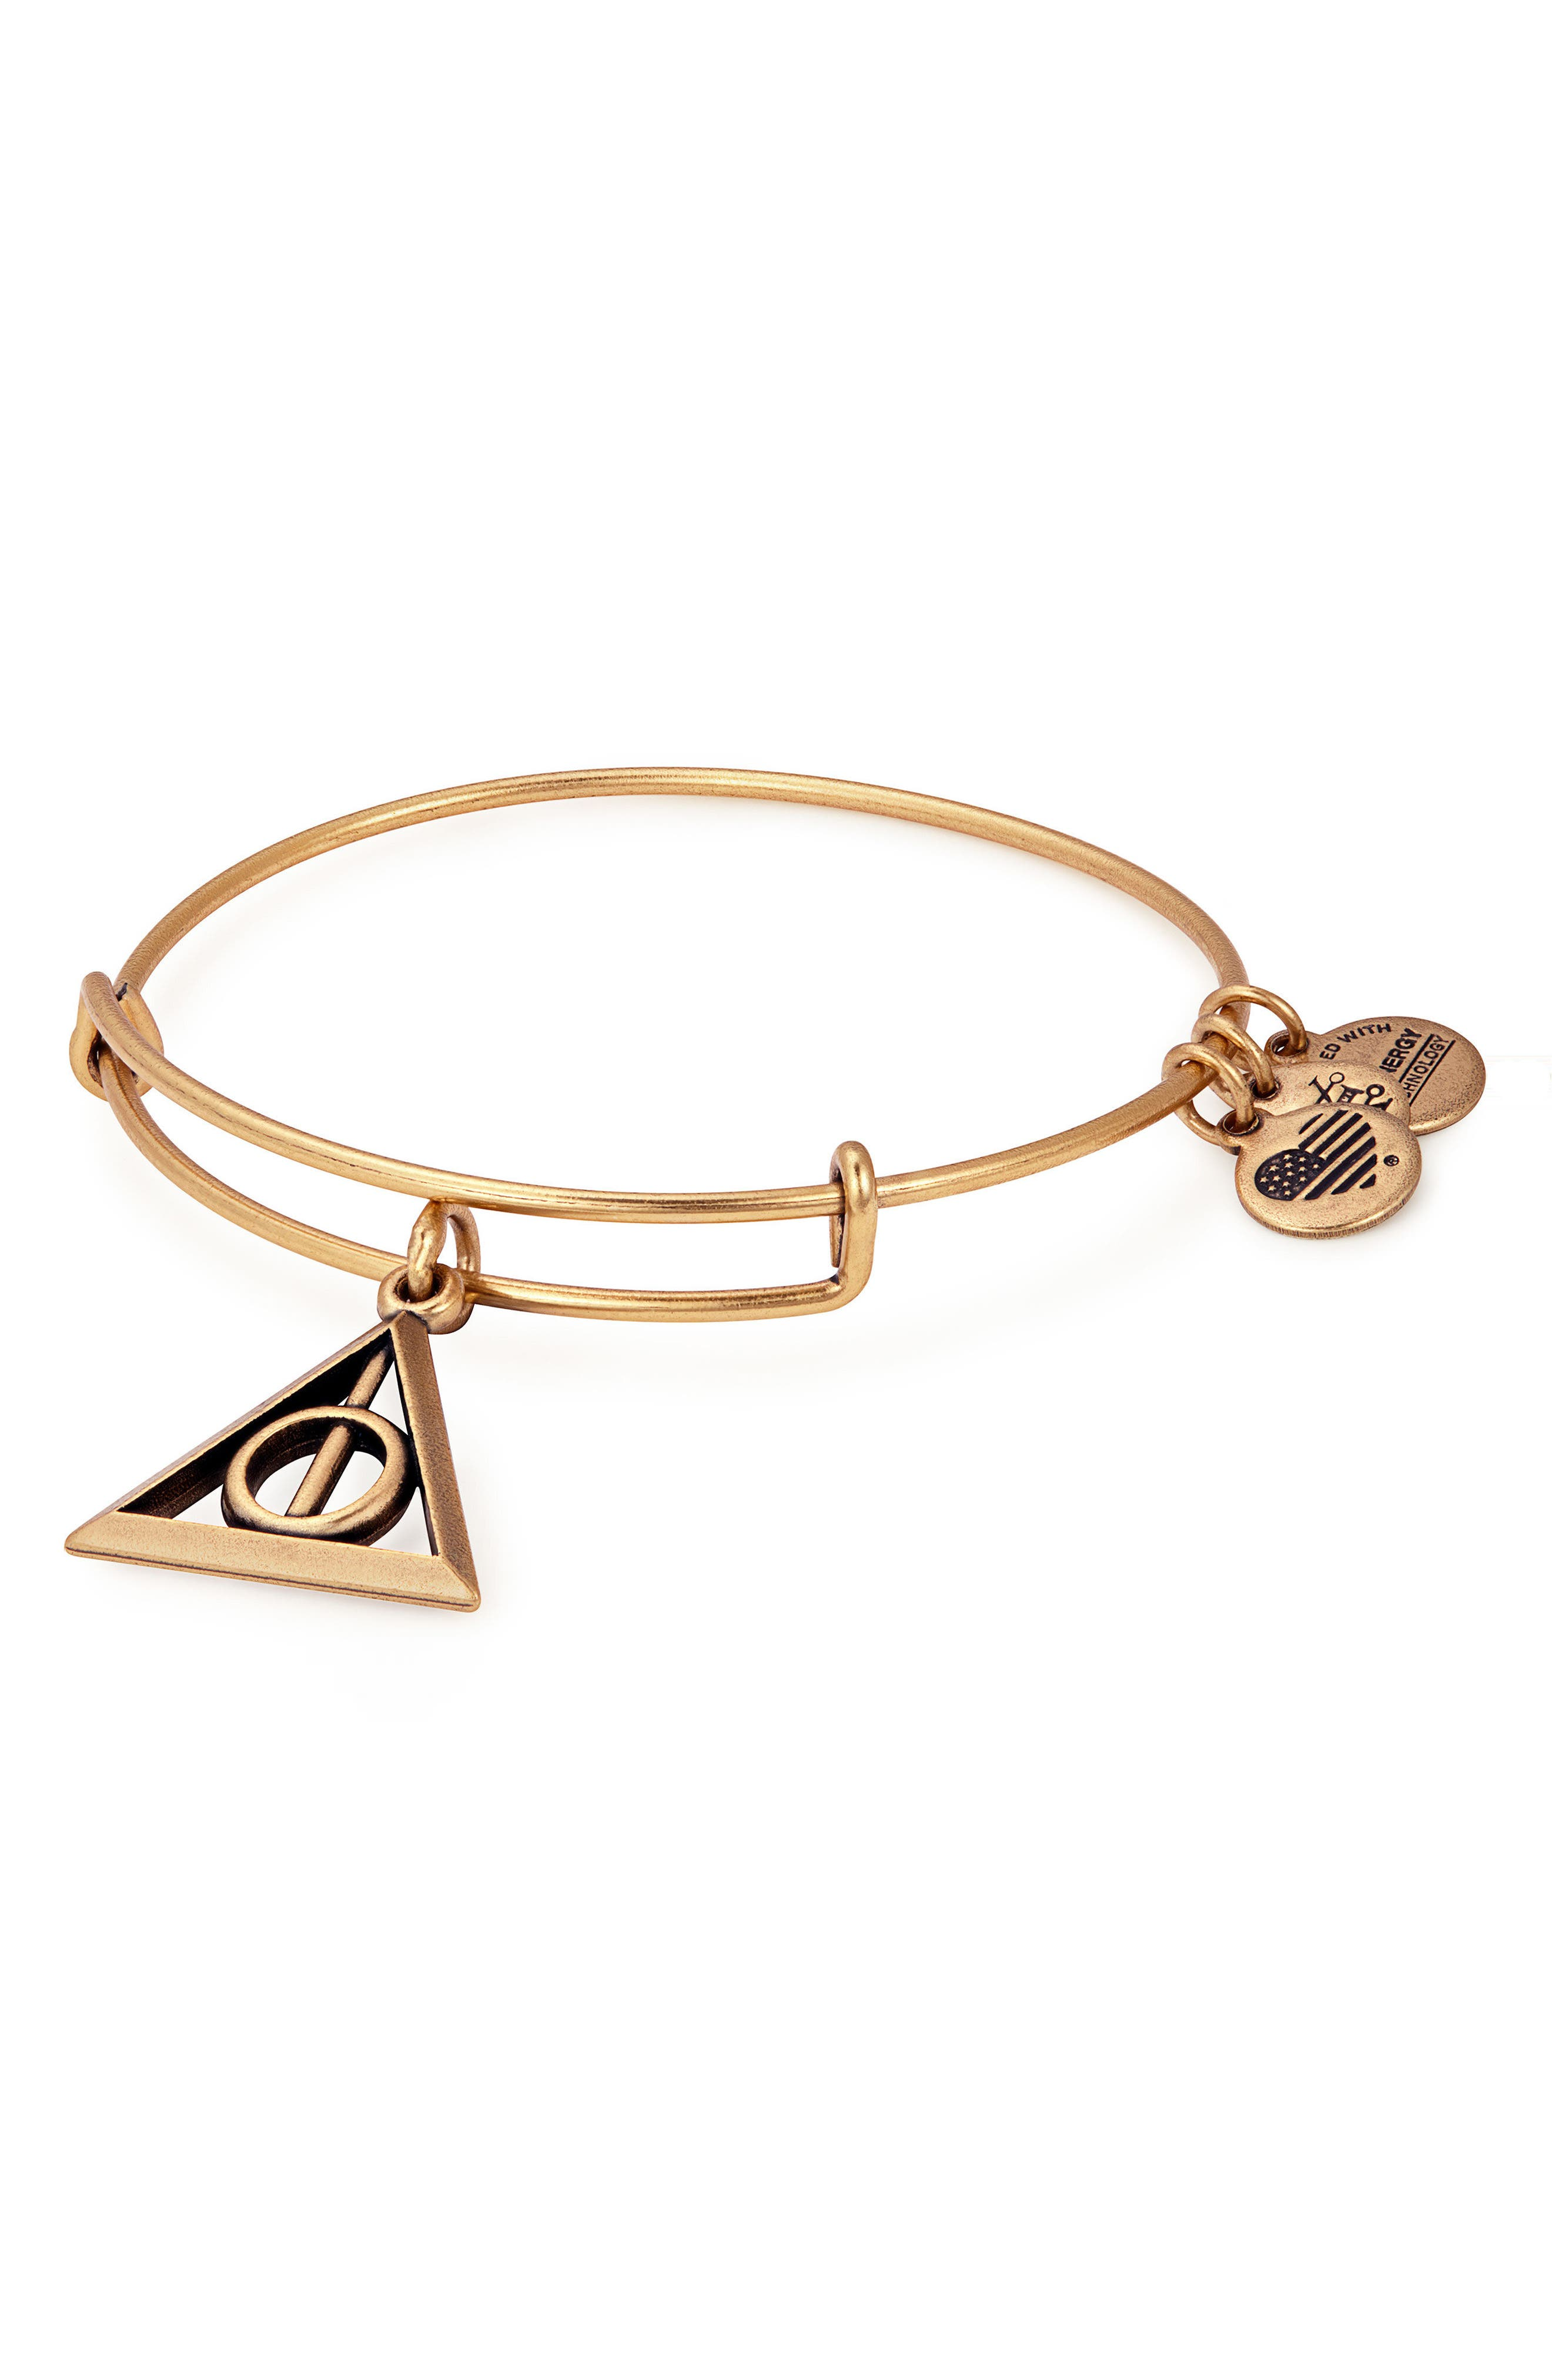 Harry Potter<sup>™</sup> Deathly Hallows<sup>™</sup> Adjustable Wire Bangle,                         Main,                         color, GOLD